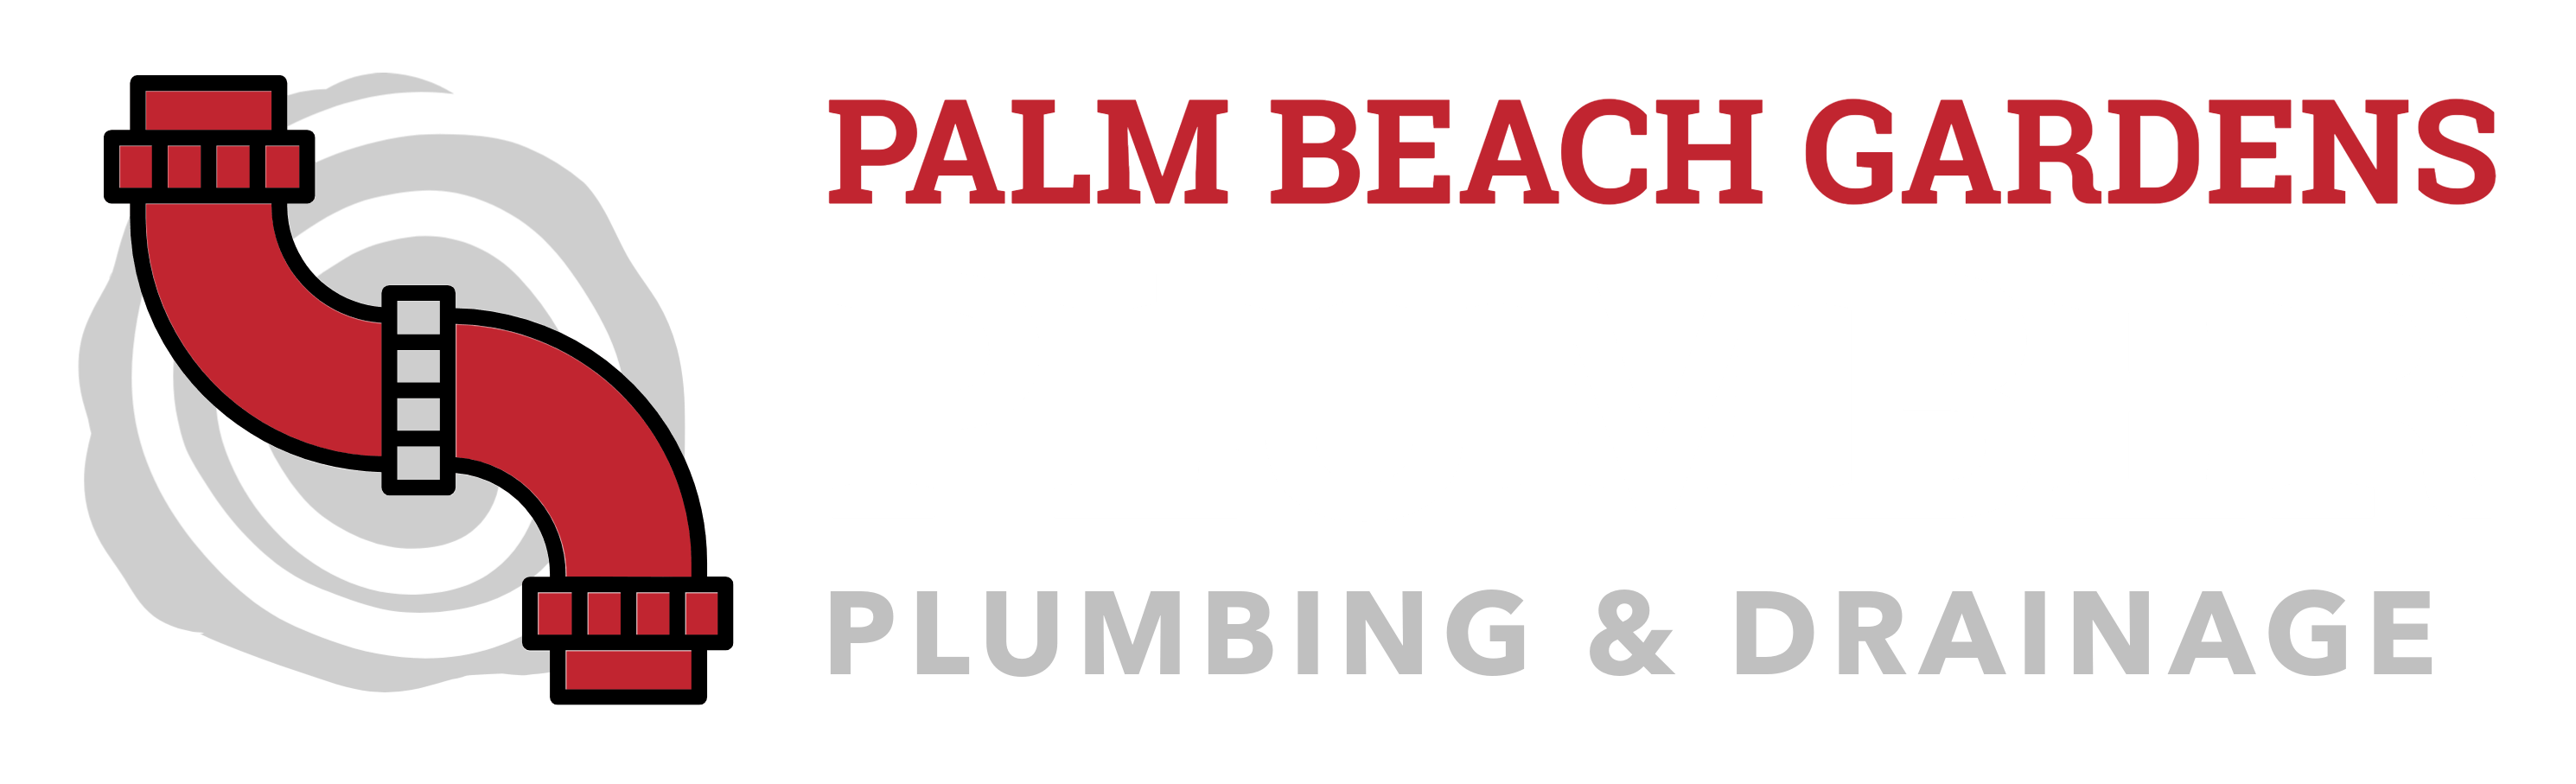 plumbing services for palm beach county